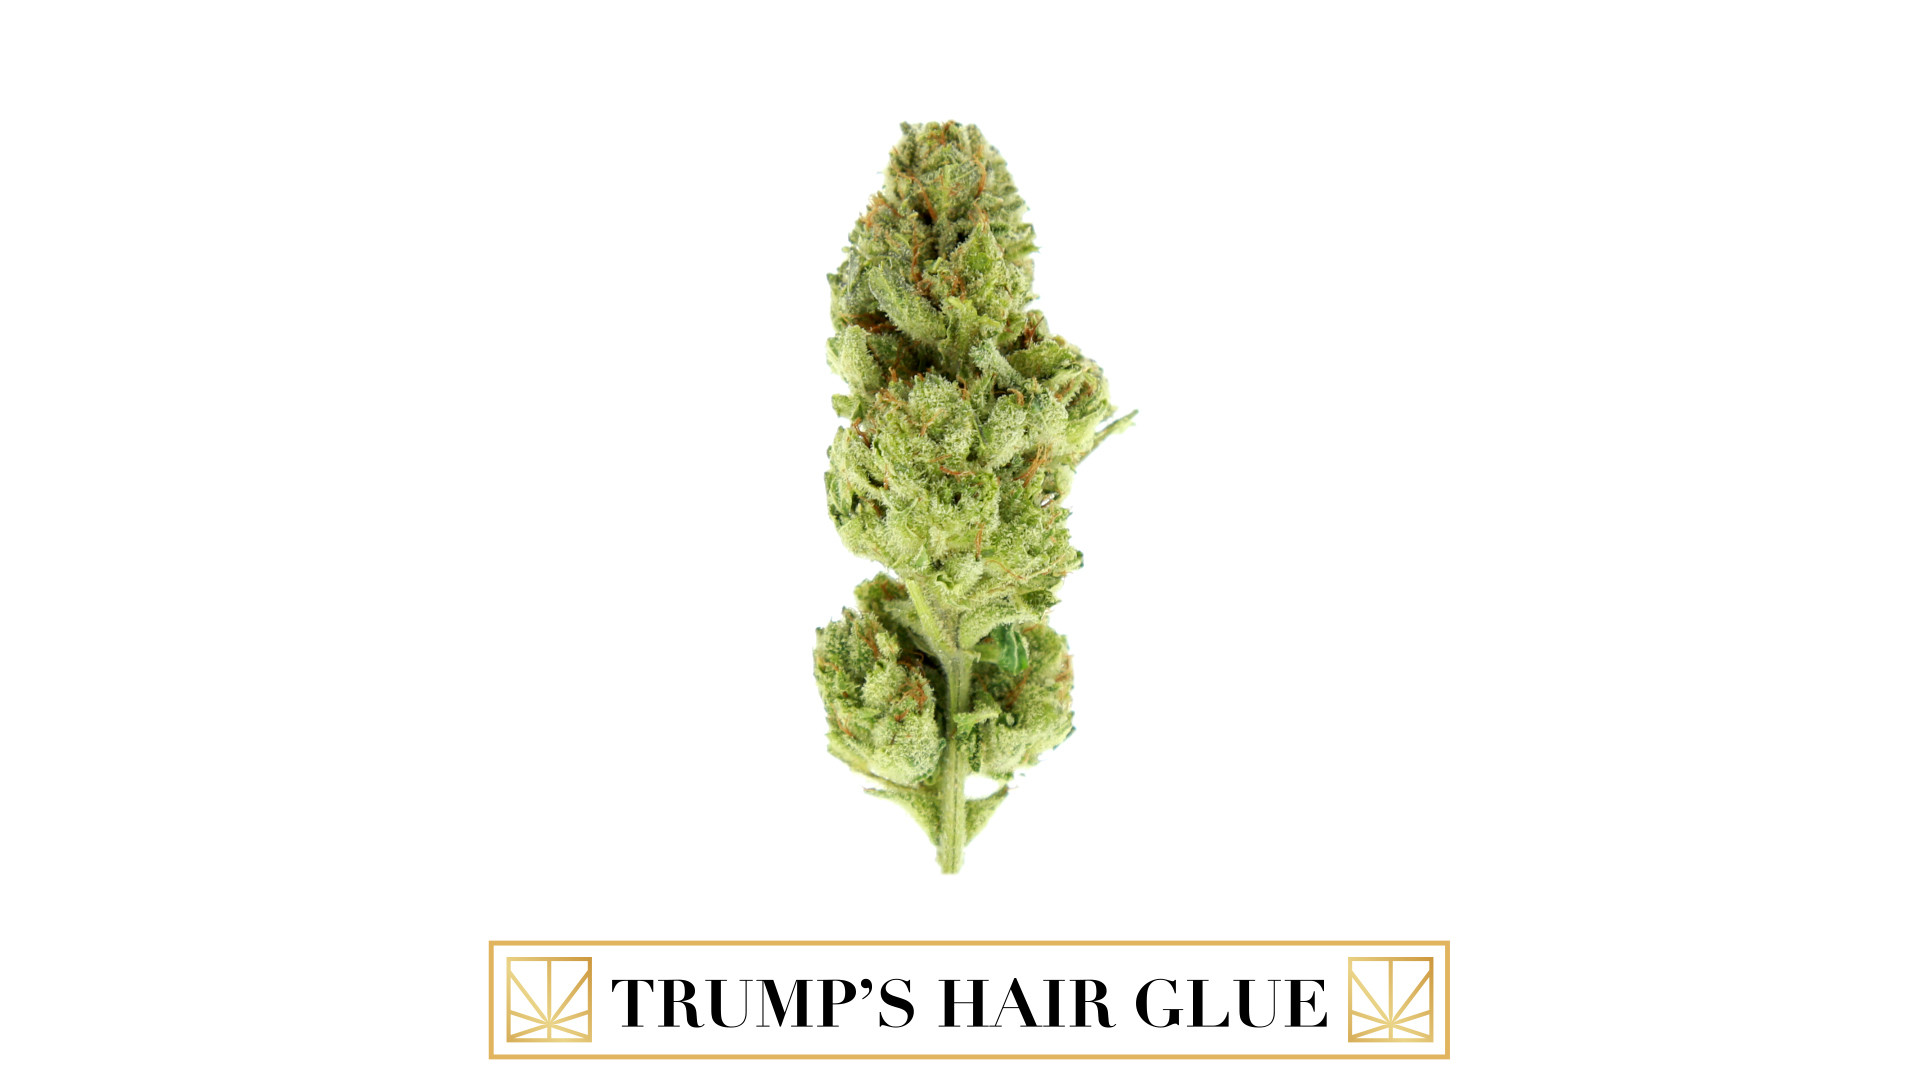 <p>World HTCC Award-Winning by Powers Grown with New Amsterdam Naturals (Chemsis x Sour Dub x Chocolate Diesel) Trump's Hair Glue #4. The popcorn structured nugs of this cut have neon green coloring, trichomes caked from top to bottom, and copper pistils almost hidden behind the plump calyxes. Its combination of a sour diesel scent with slight hints of citrus is very pungent with the flavor being just as intense. The almost instantaneous head change upon exhale weighs heavily on the cerebral side that is both energetic and euphoric. The body high is just enough to relax you, but not over power your senses.<br /> </p>